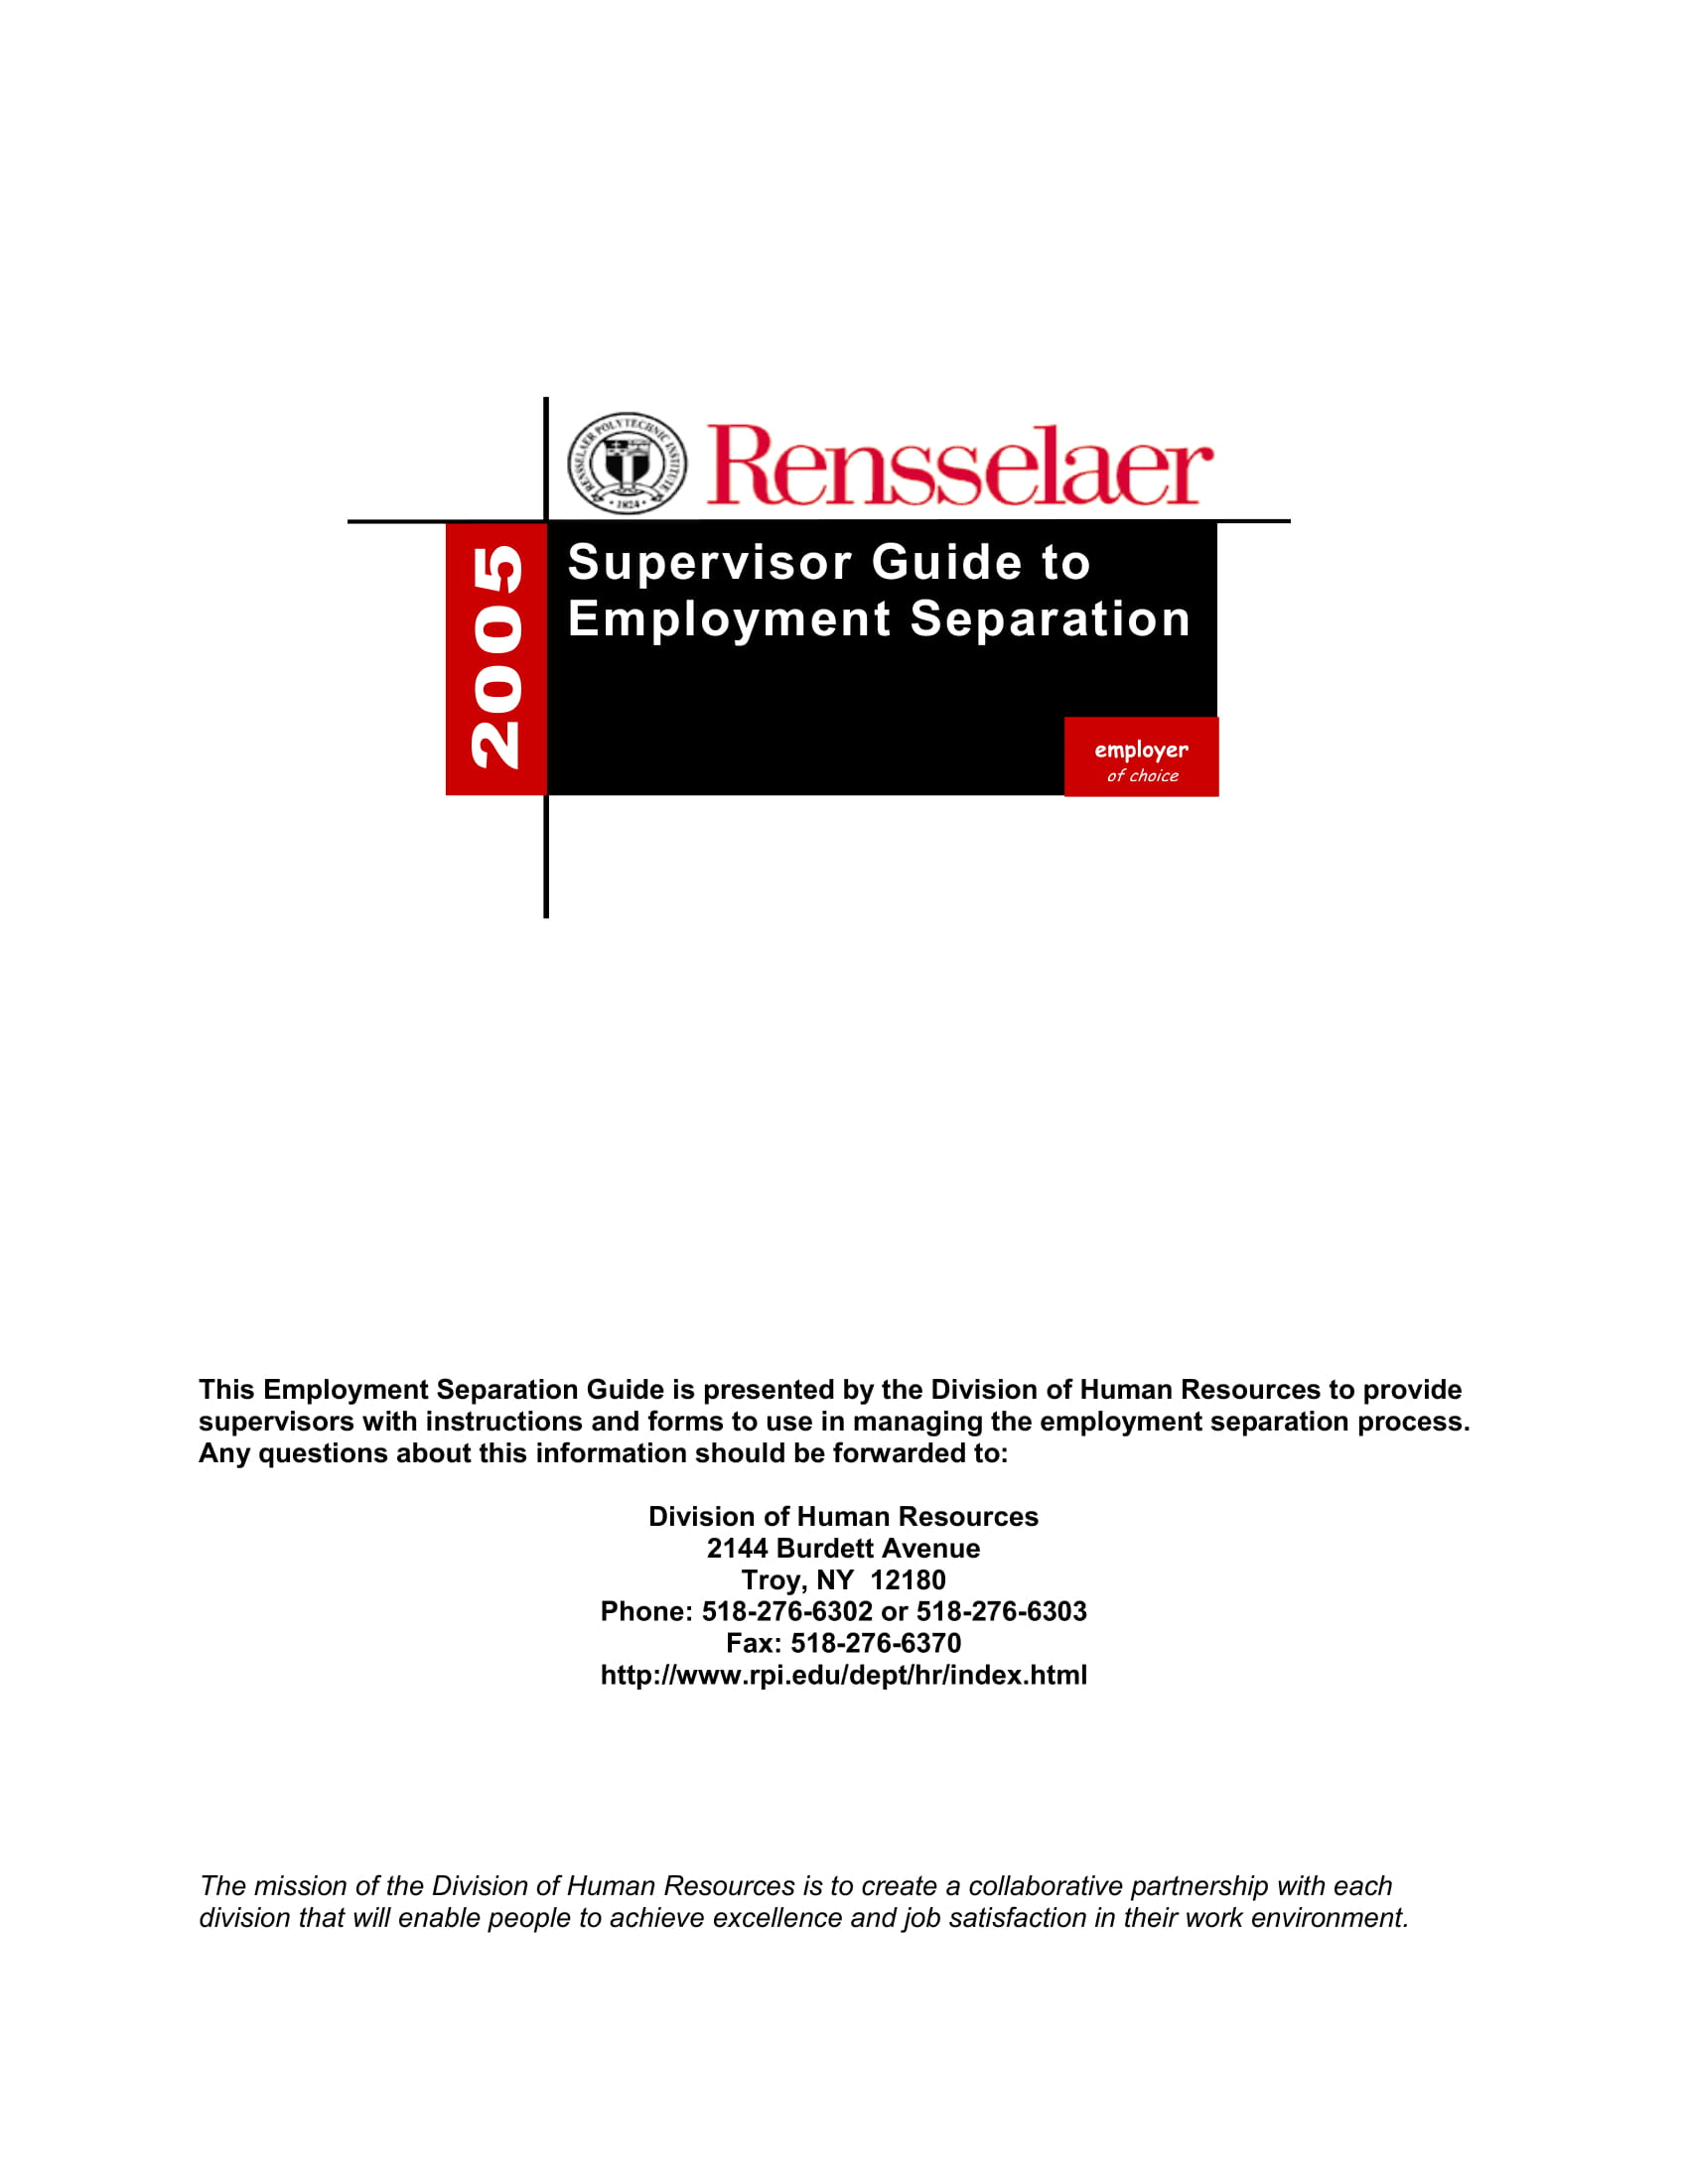 supervisors guide to employee separation 01